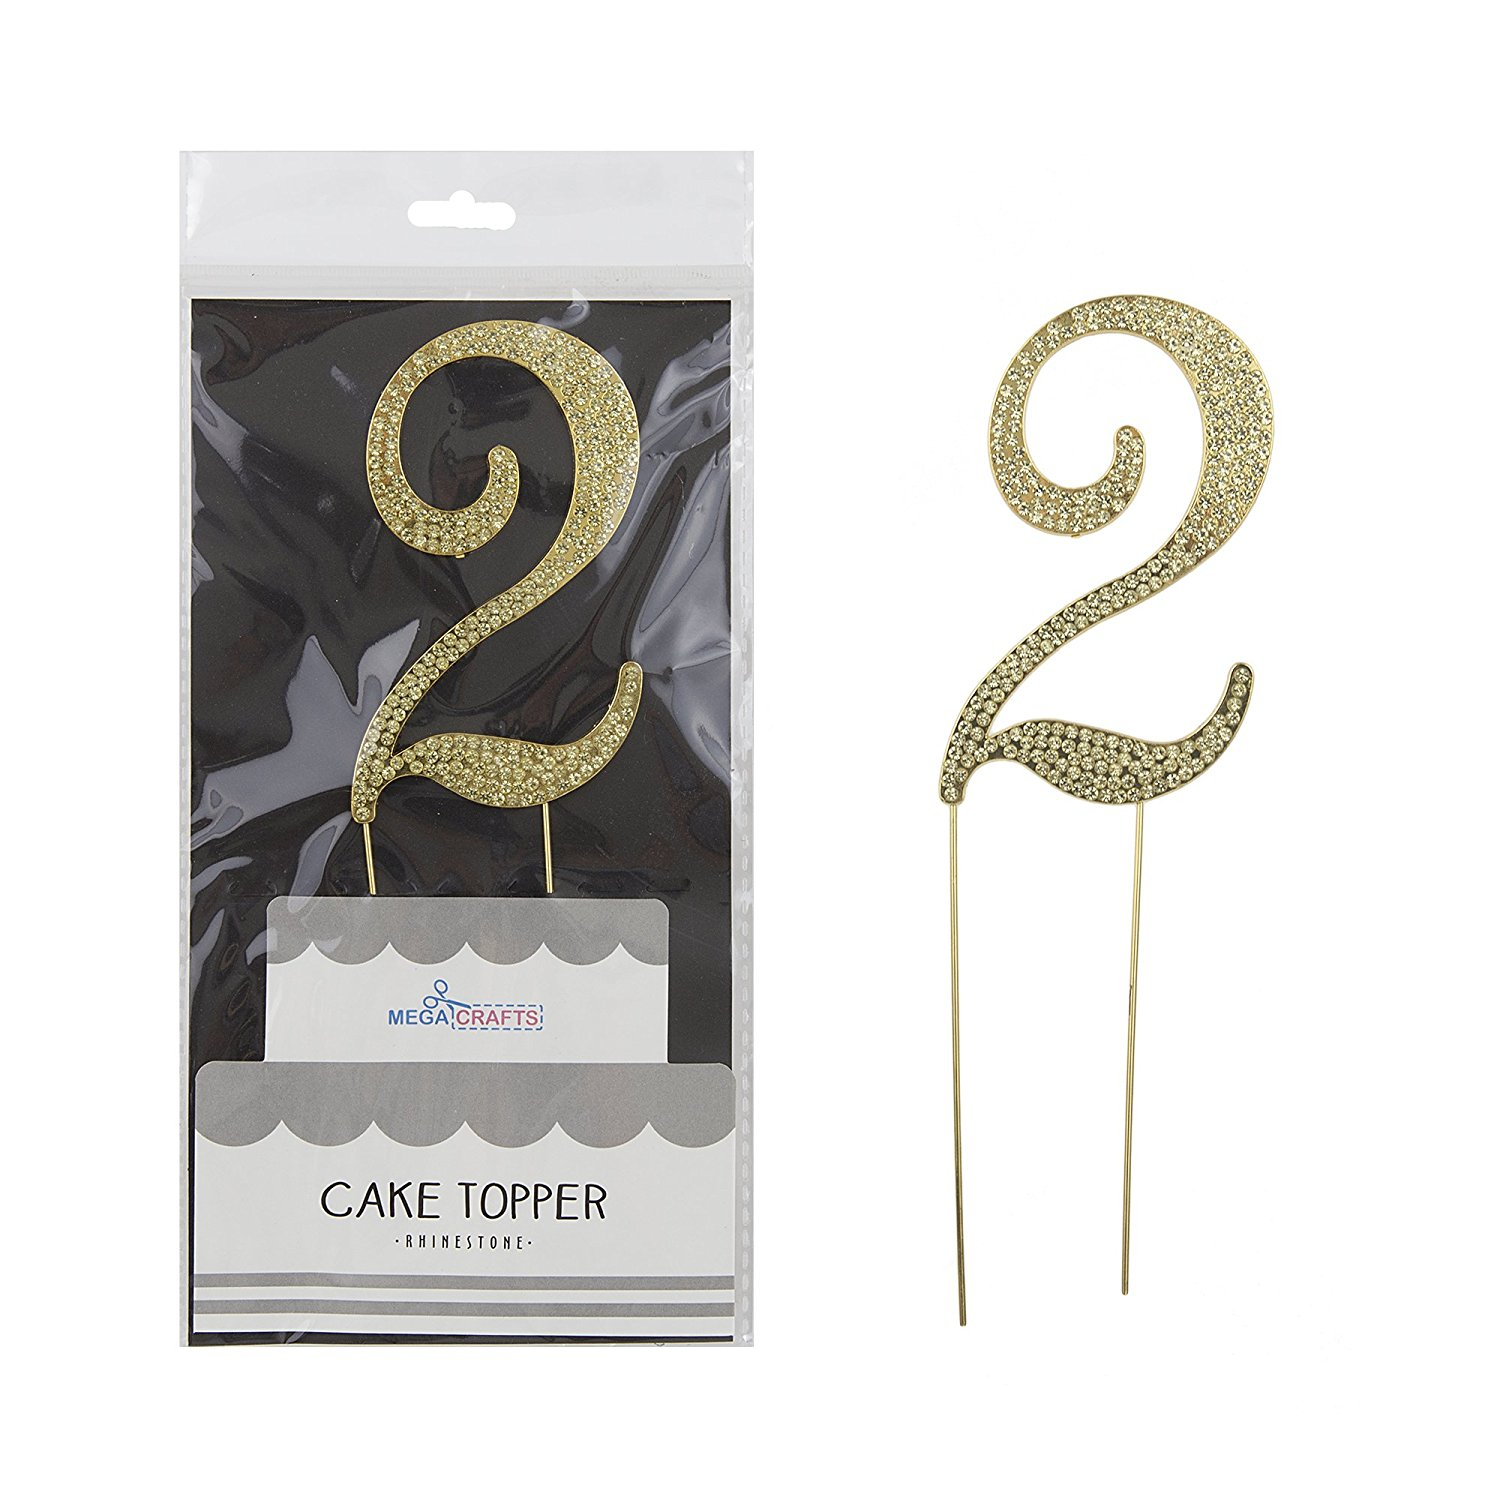 Mega Crafts Sparkly Gold Rhinestone Number 2 Cake Topper Decoration   Shimmering Gold Crystals & Durable Alloy Metal   For Birthdays, Anniversaries, Centerpieces, Party Favors, Celebrations & More